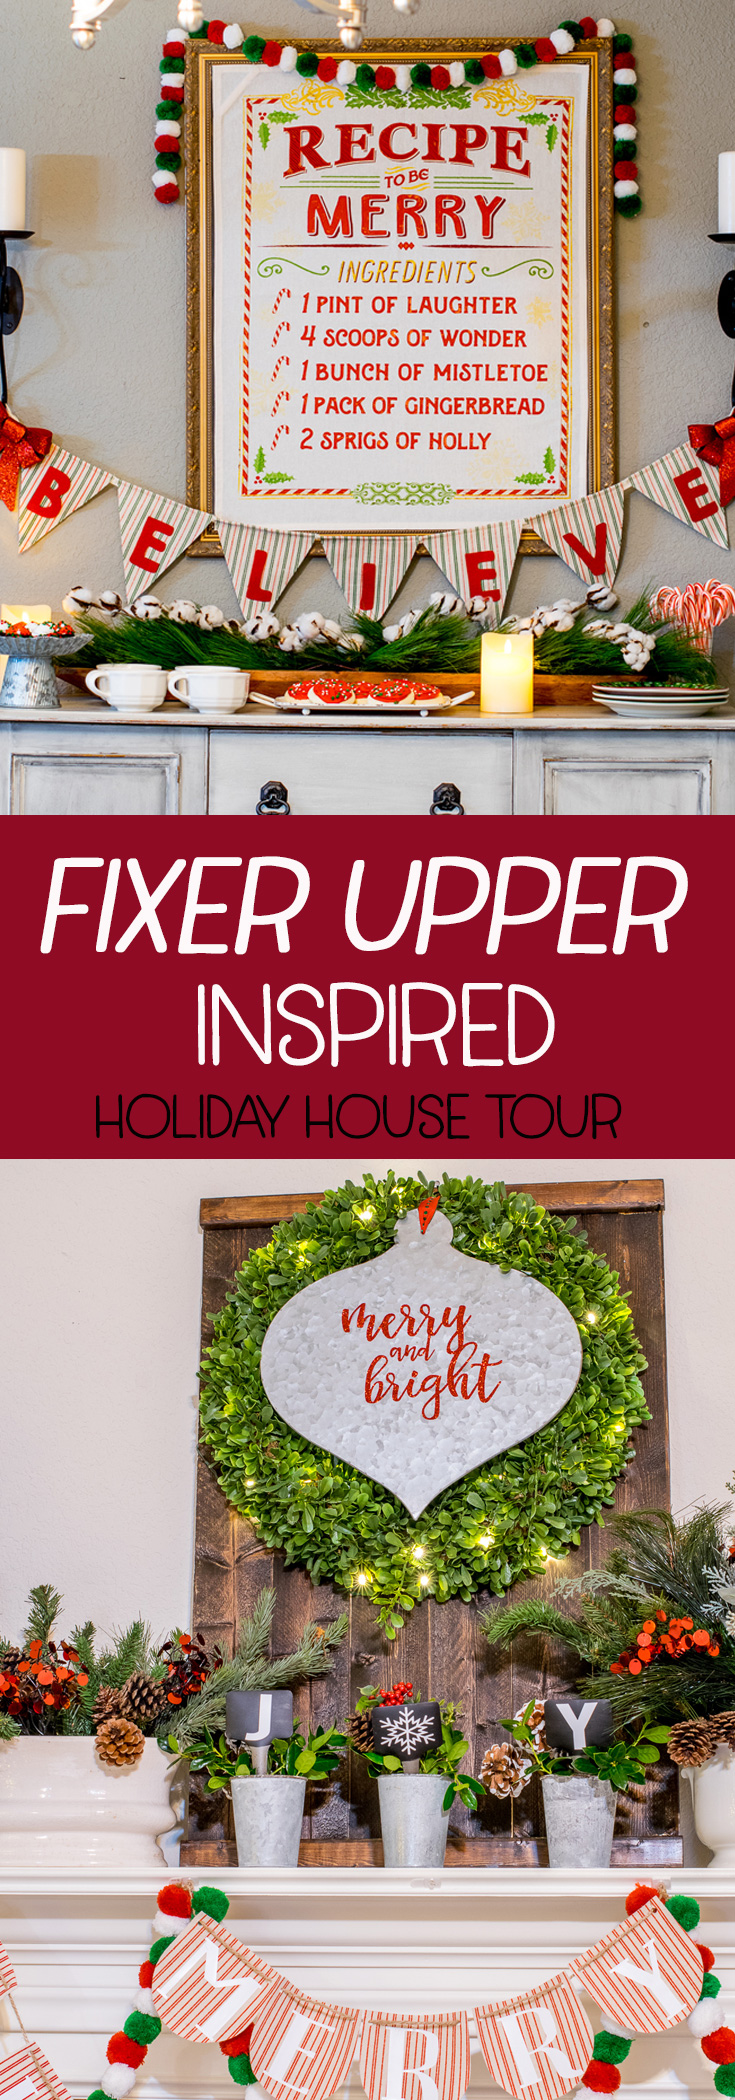 Welcome to my Holiday House tour! This years tour is FIXER UPPER INSPIRED! See all the little details, some of which I picked up in Waco and Round Top! #holidayhousetour #hometour #Christmastour #fixerupper #holidaycrafts via @mrsmajorhoff